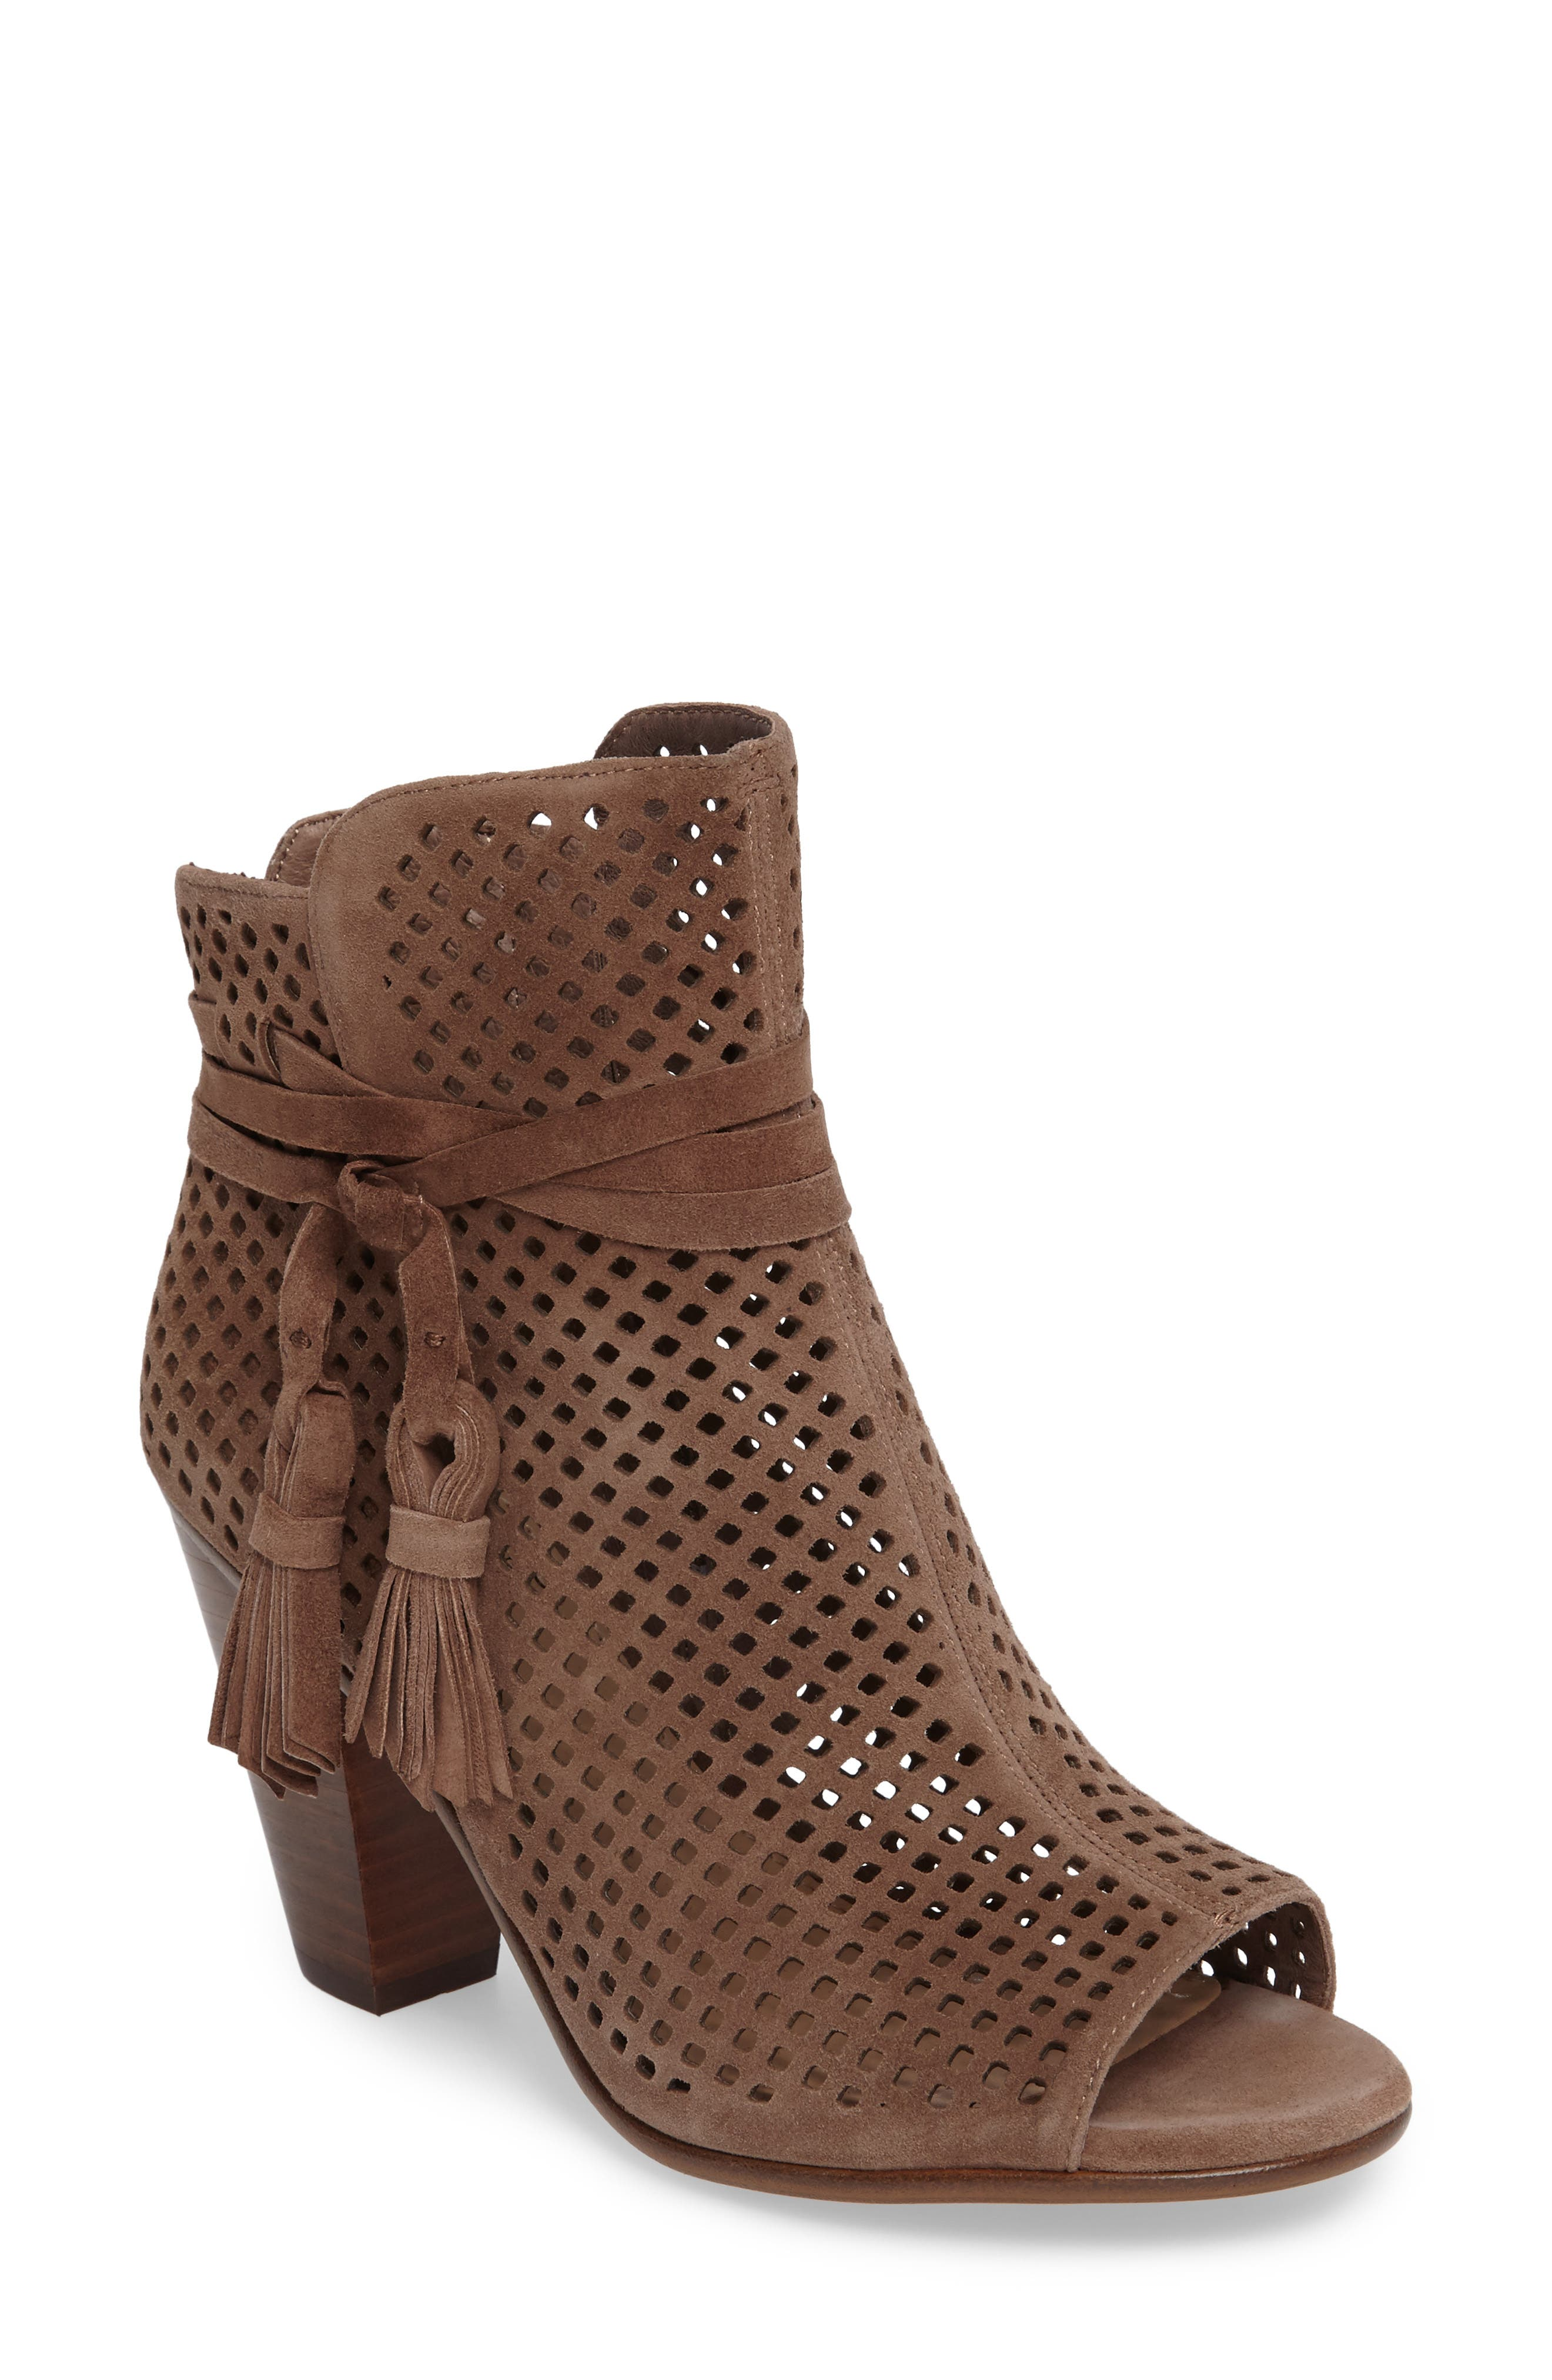 Kamey Perforated Open Toe Bootie,                             Main thumbnail 1, color,                             Phantom Suede